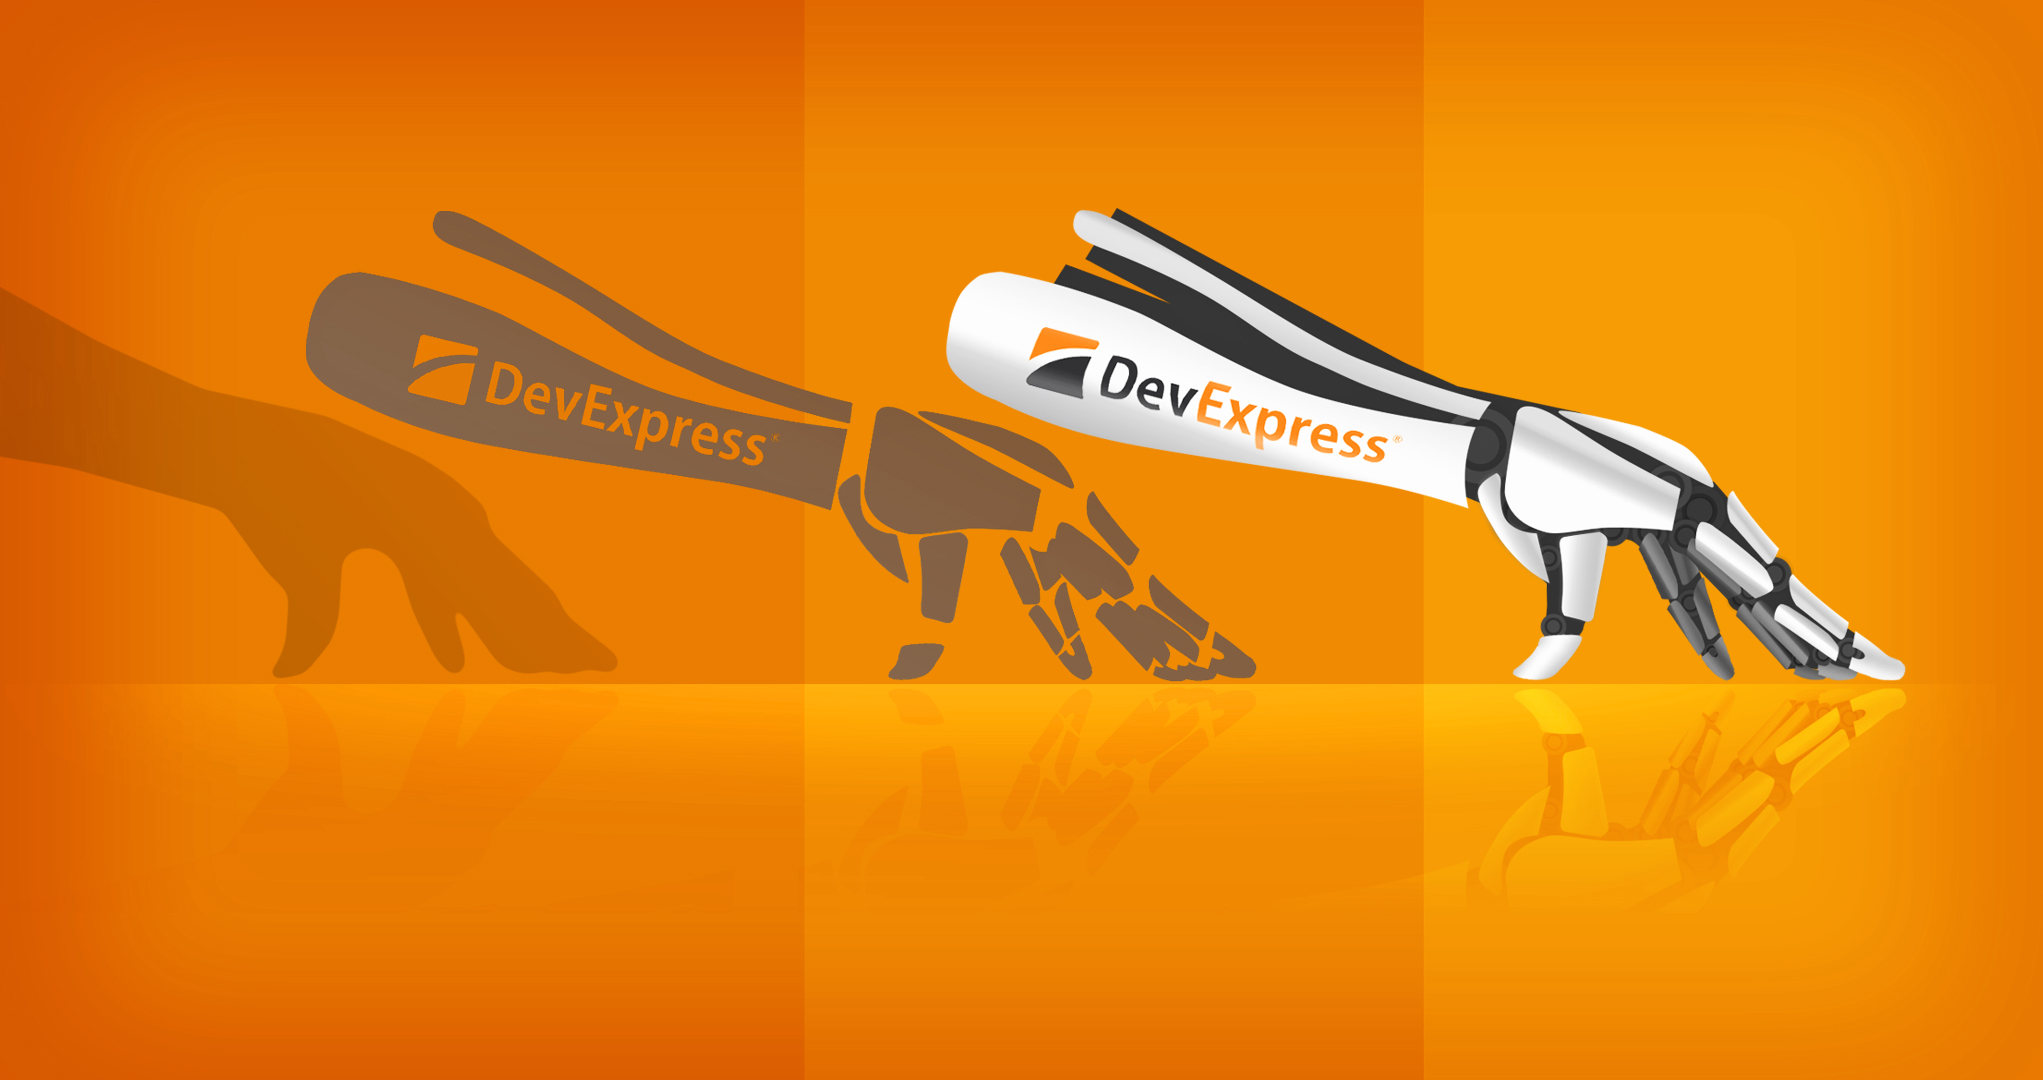 Devexpress history